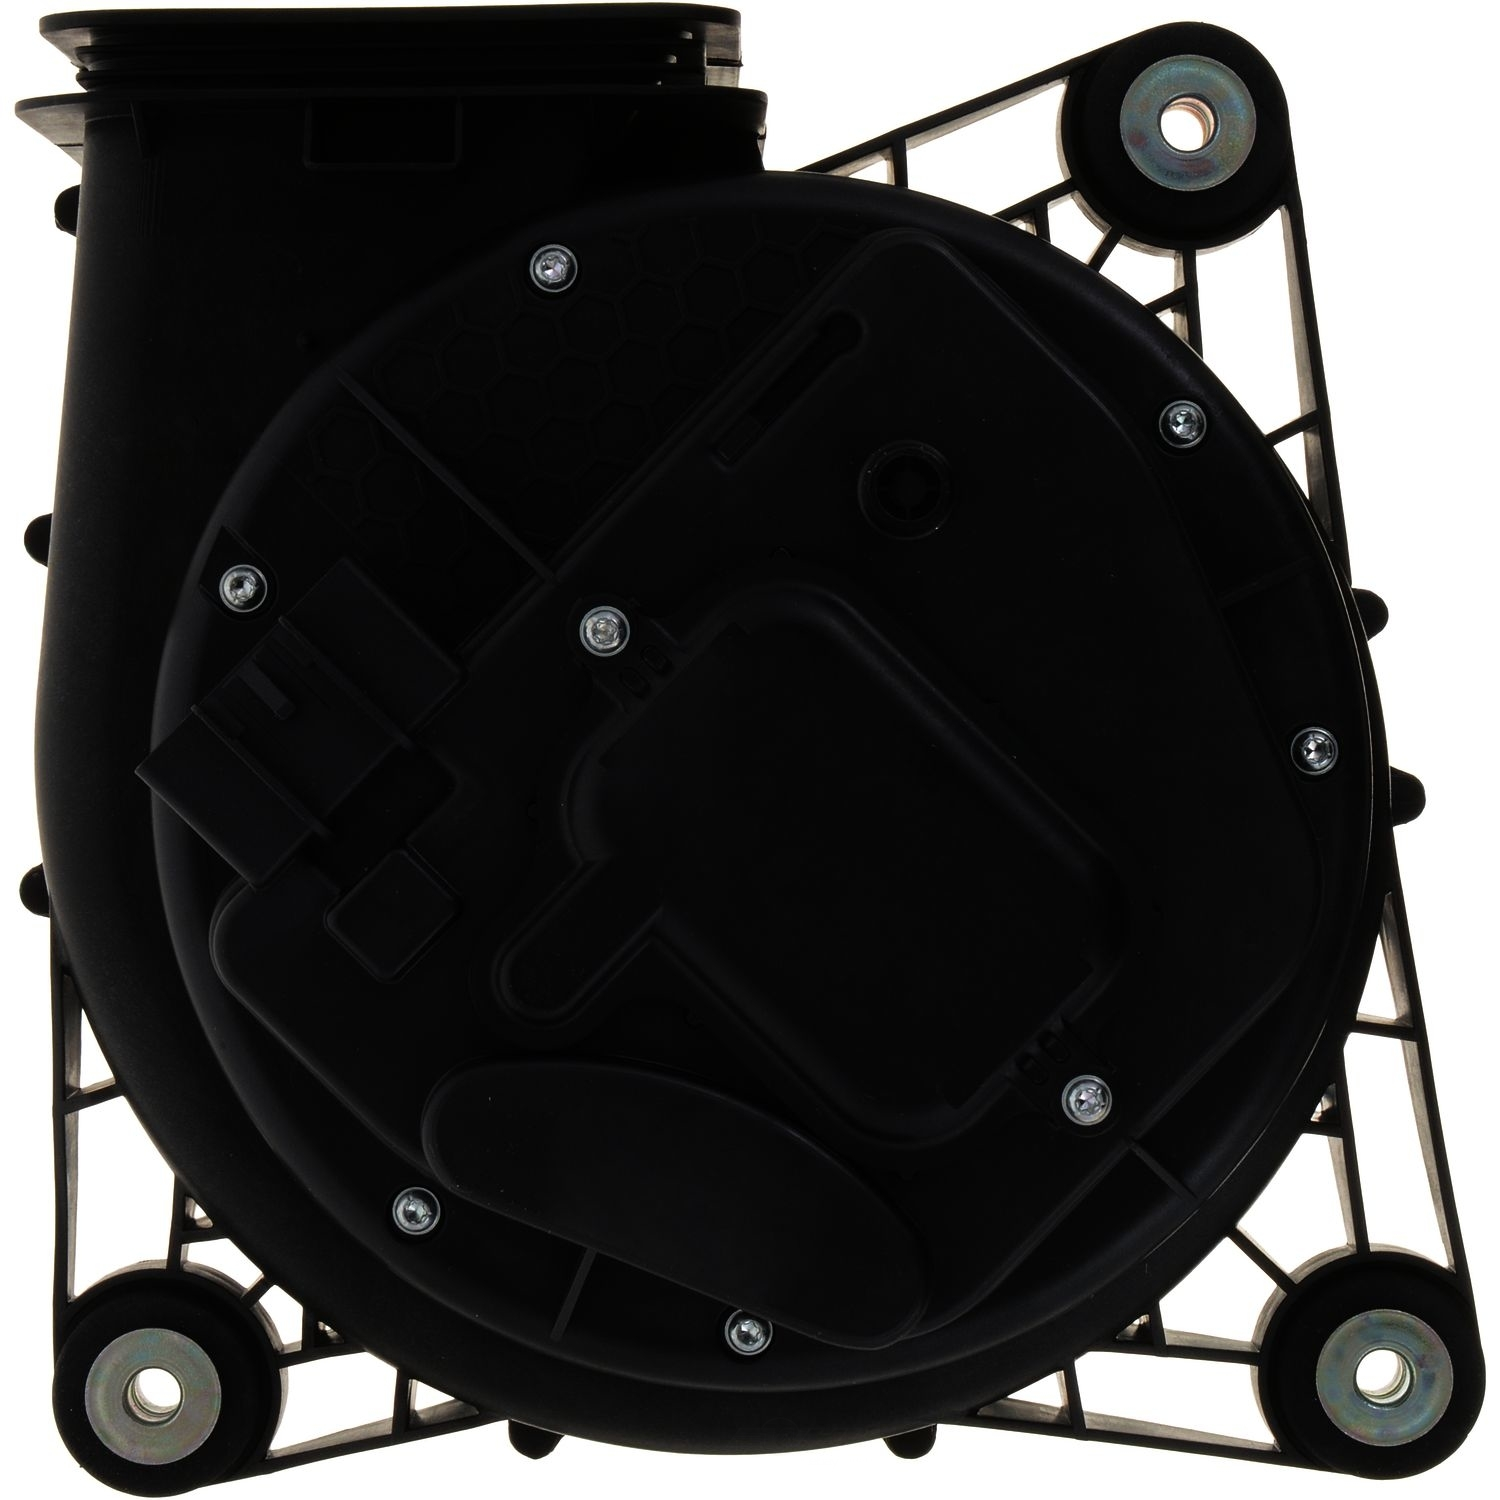 VDO - Drive Motor Battery Pack Cooling Fan Assembly - SIE PM9509